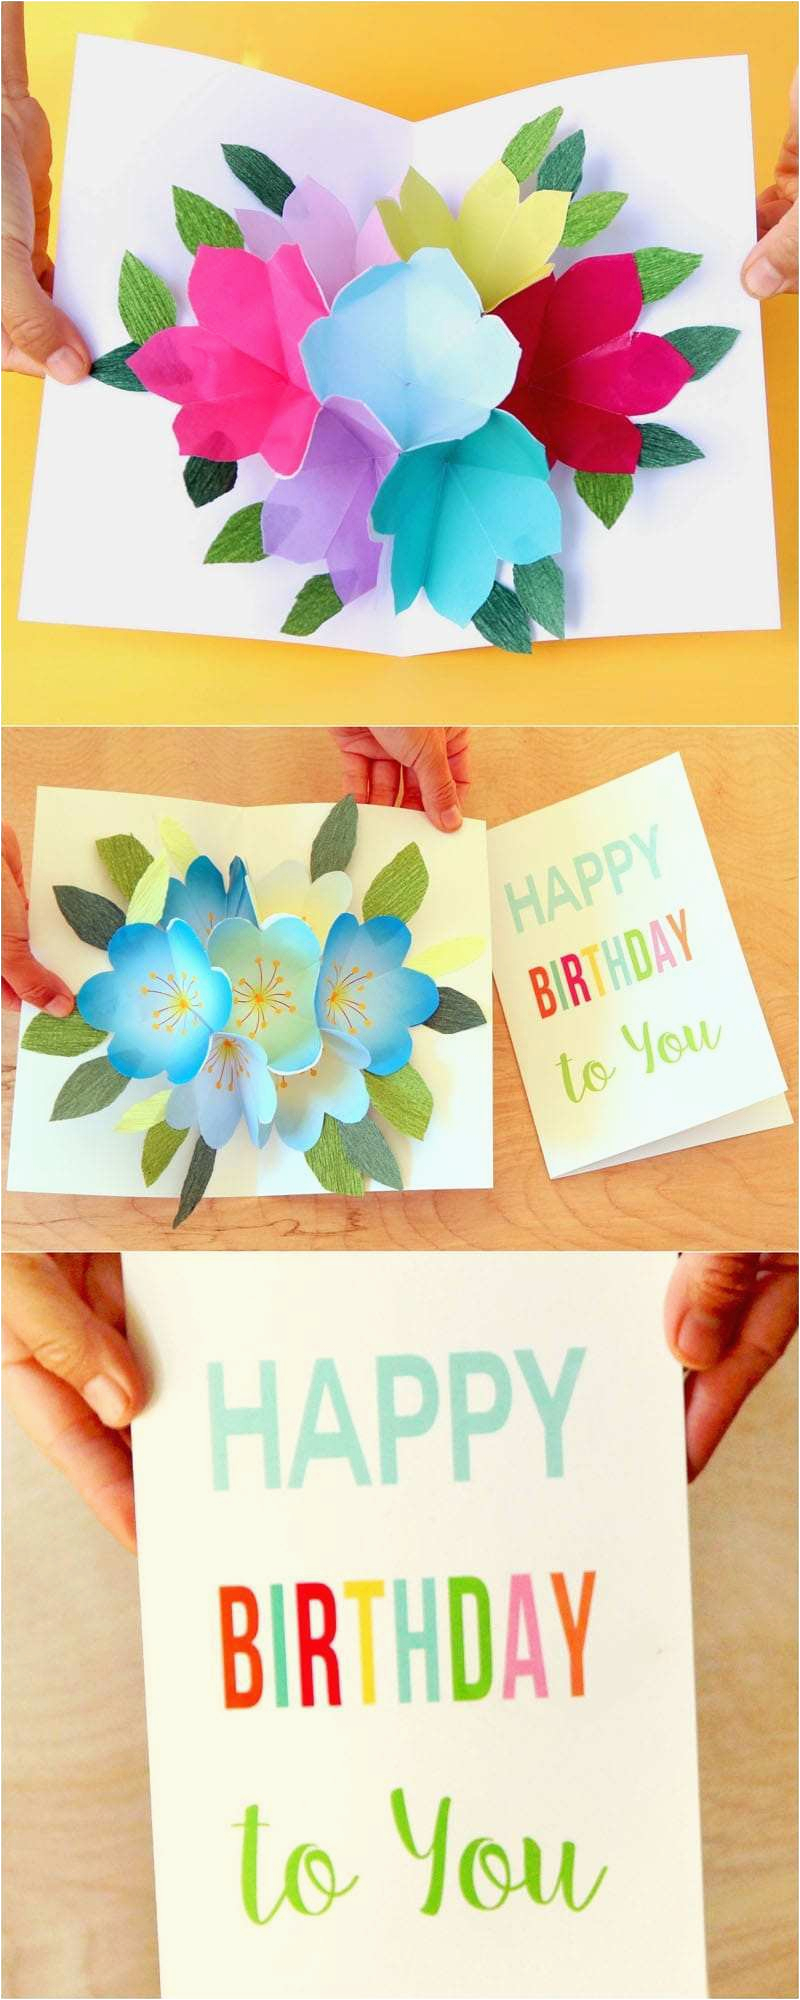 Birthday Card Images With Name Editor Happy Edit Awesome A